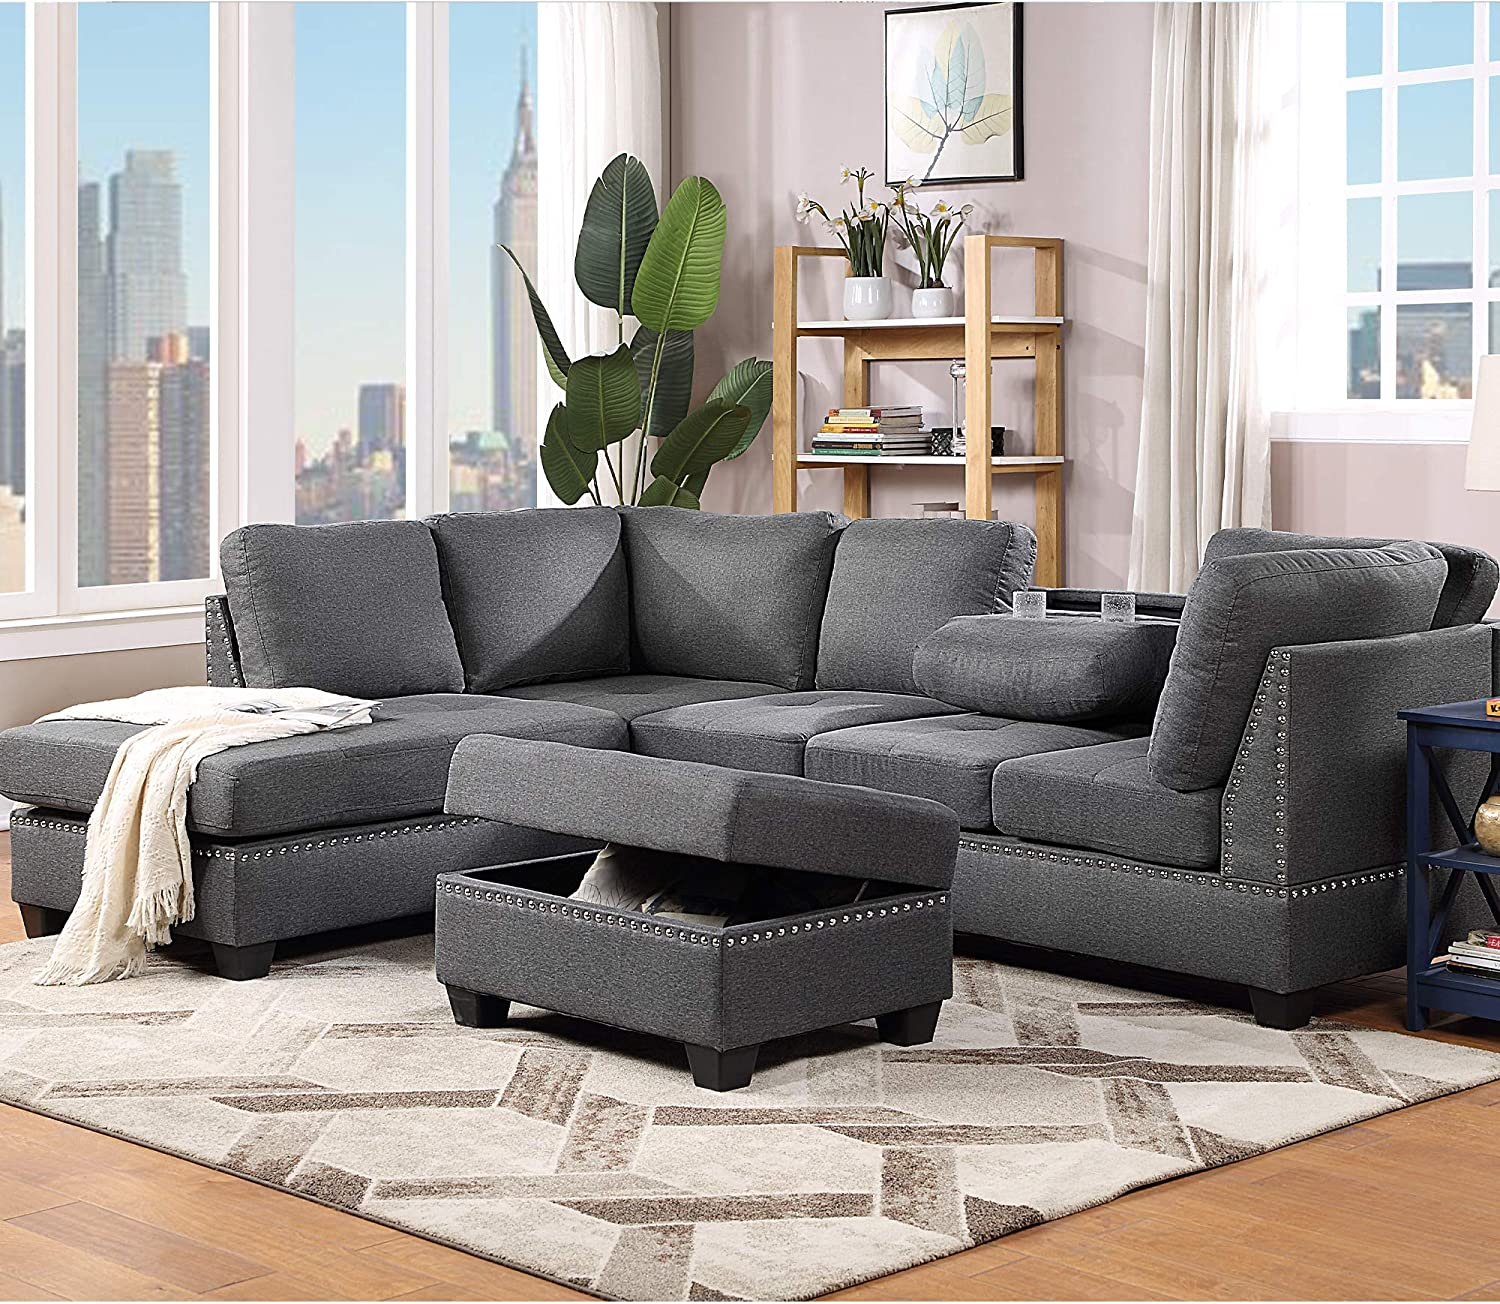 Sectional Sofas 3-Seat New Shipping Free Shipping Sofa Couches NEW with Reversib